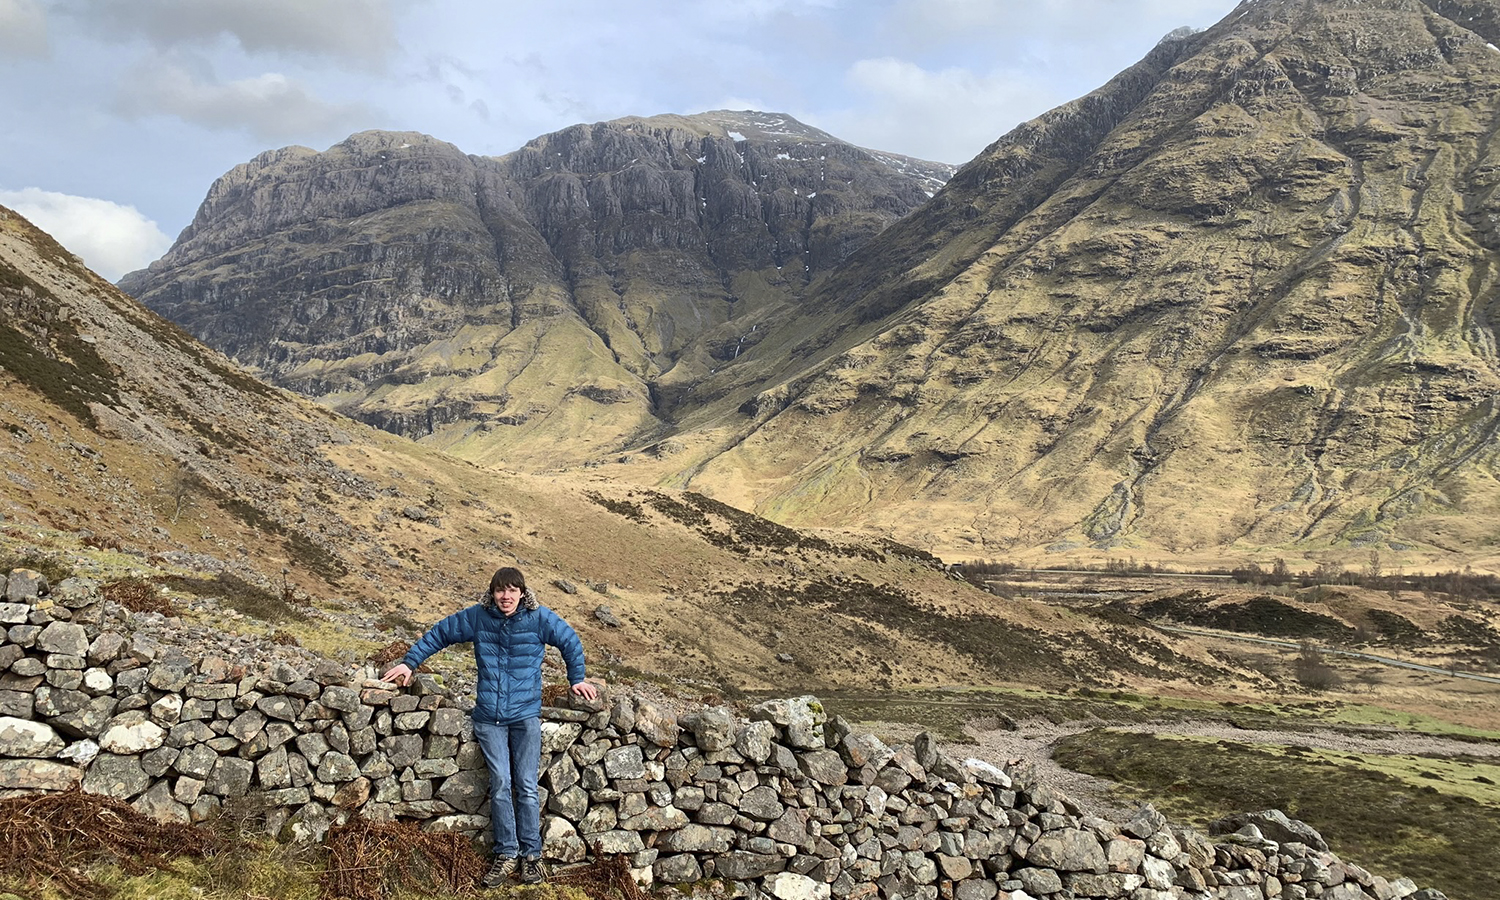 Brian Schaumloffel '20 hikes in the Scottish highlands near Glencoe while studying abroad in Glasgow, Scotland.